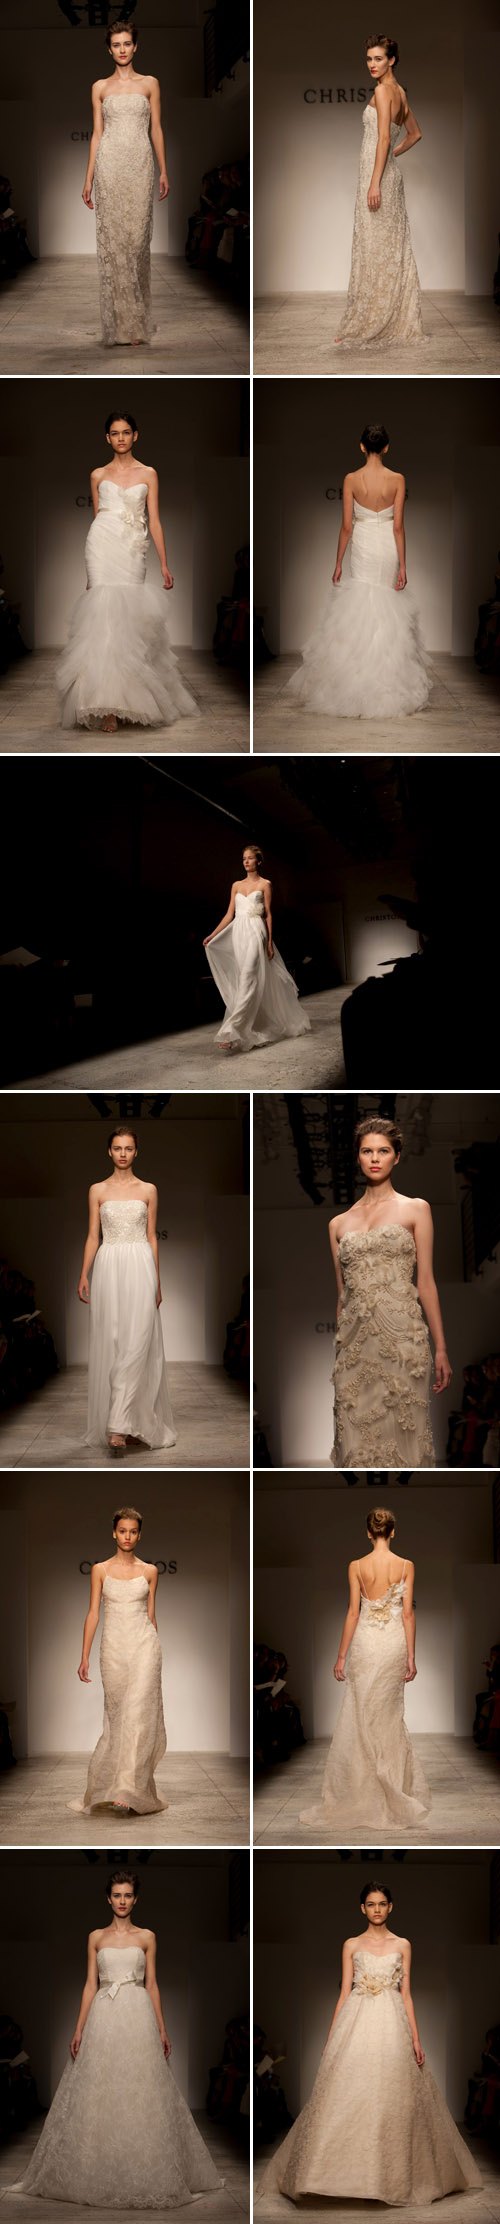 Christos Spring 2011 bridal wedding dress collection runway show, images by John and Joseph Photography